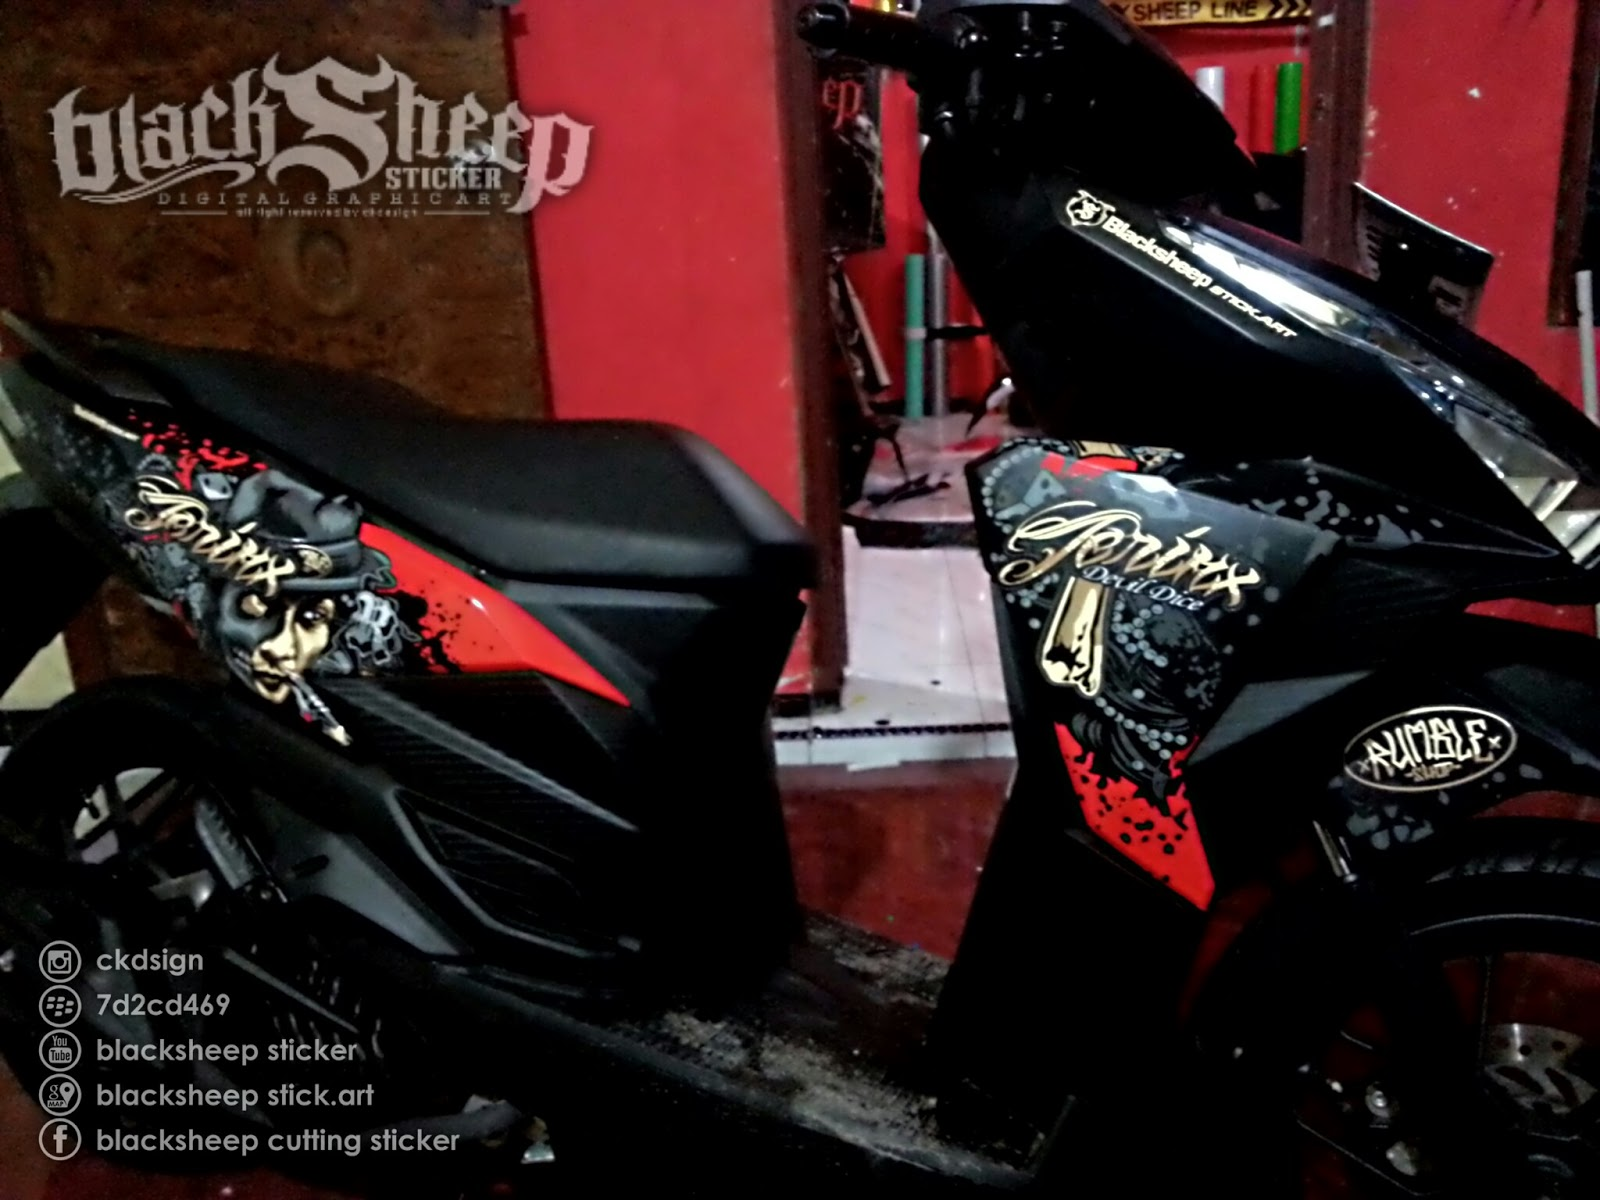 blacksheep sticker